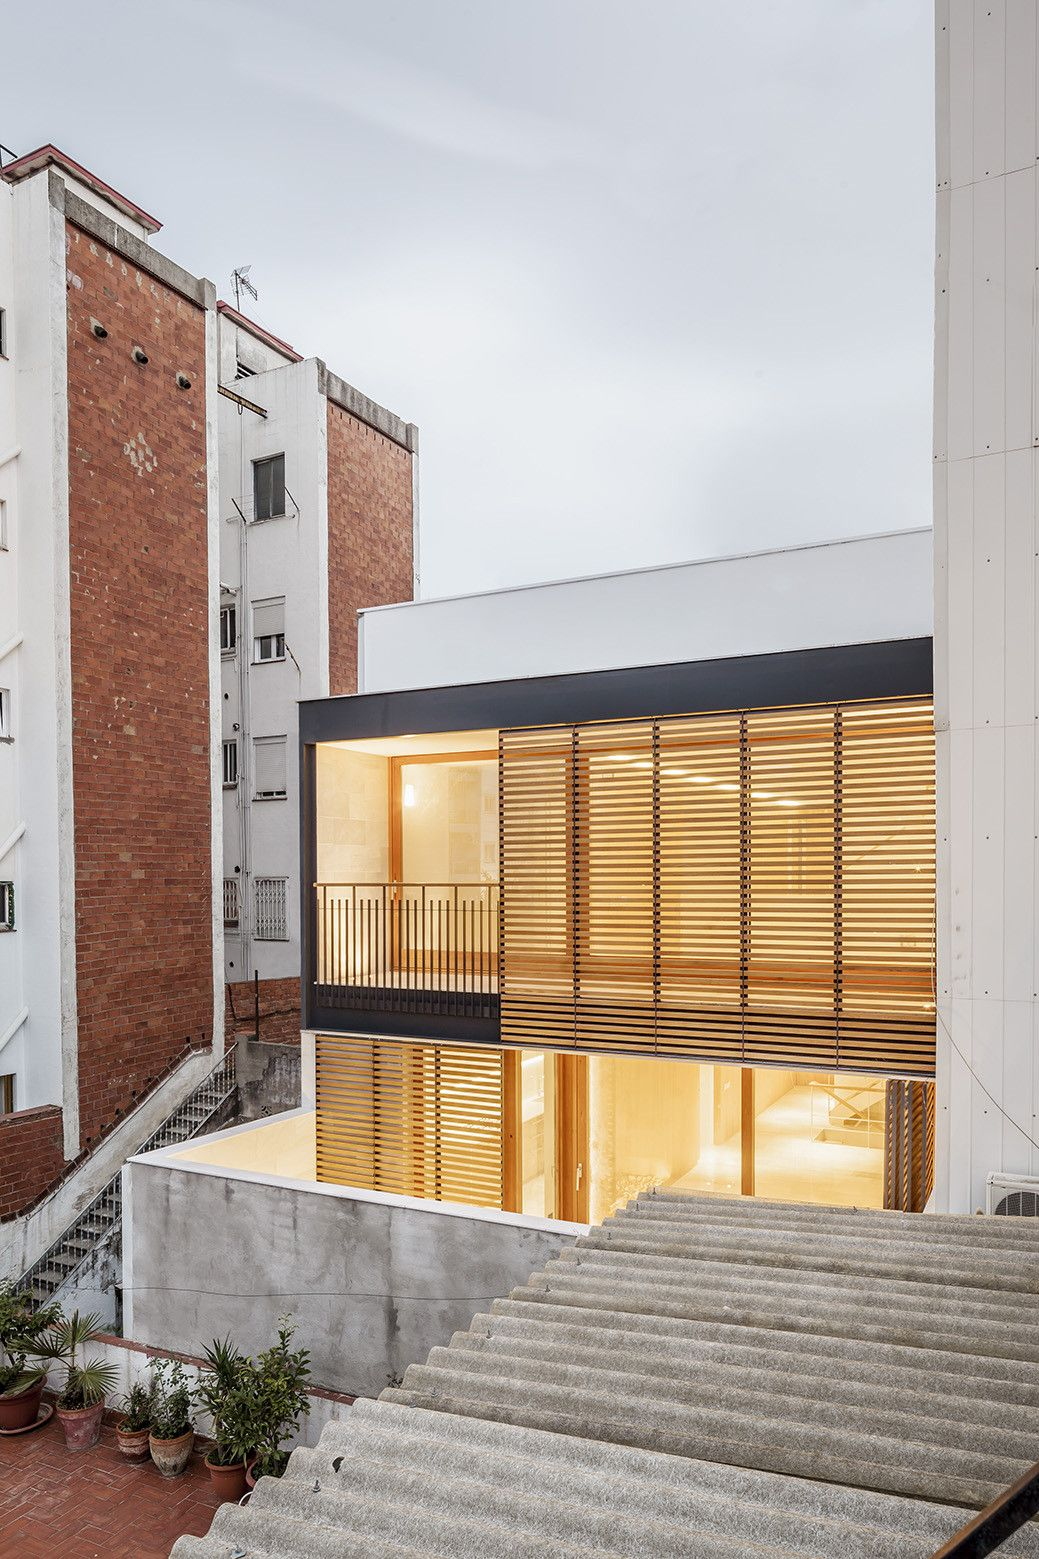 Gallery of CP House / Alventosa Morell Arquitectes - 6